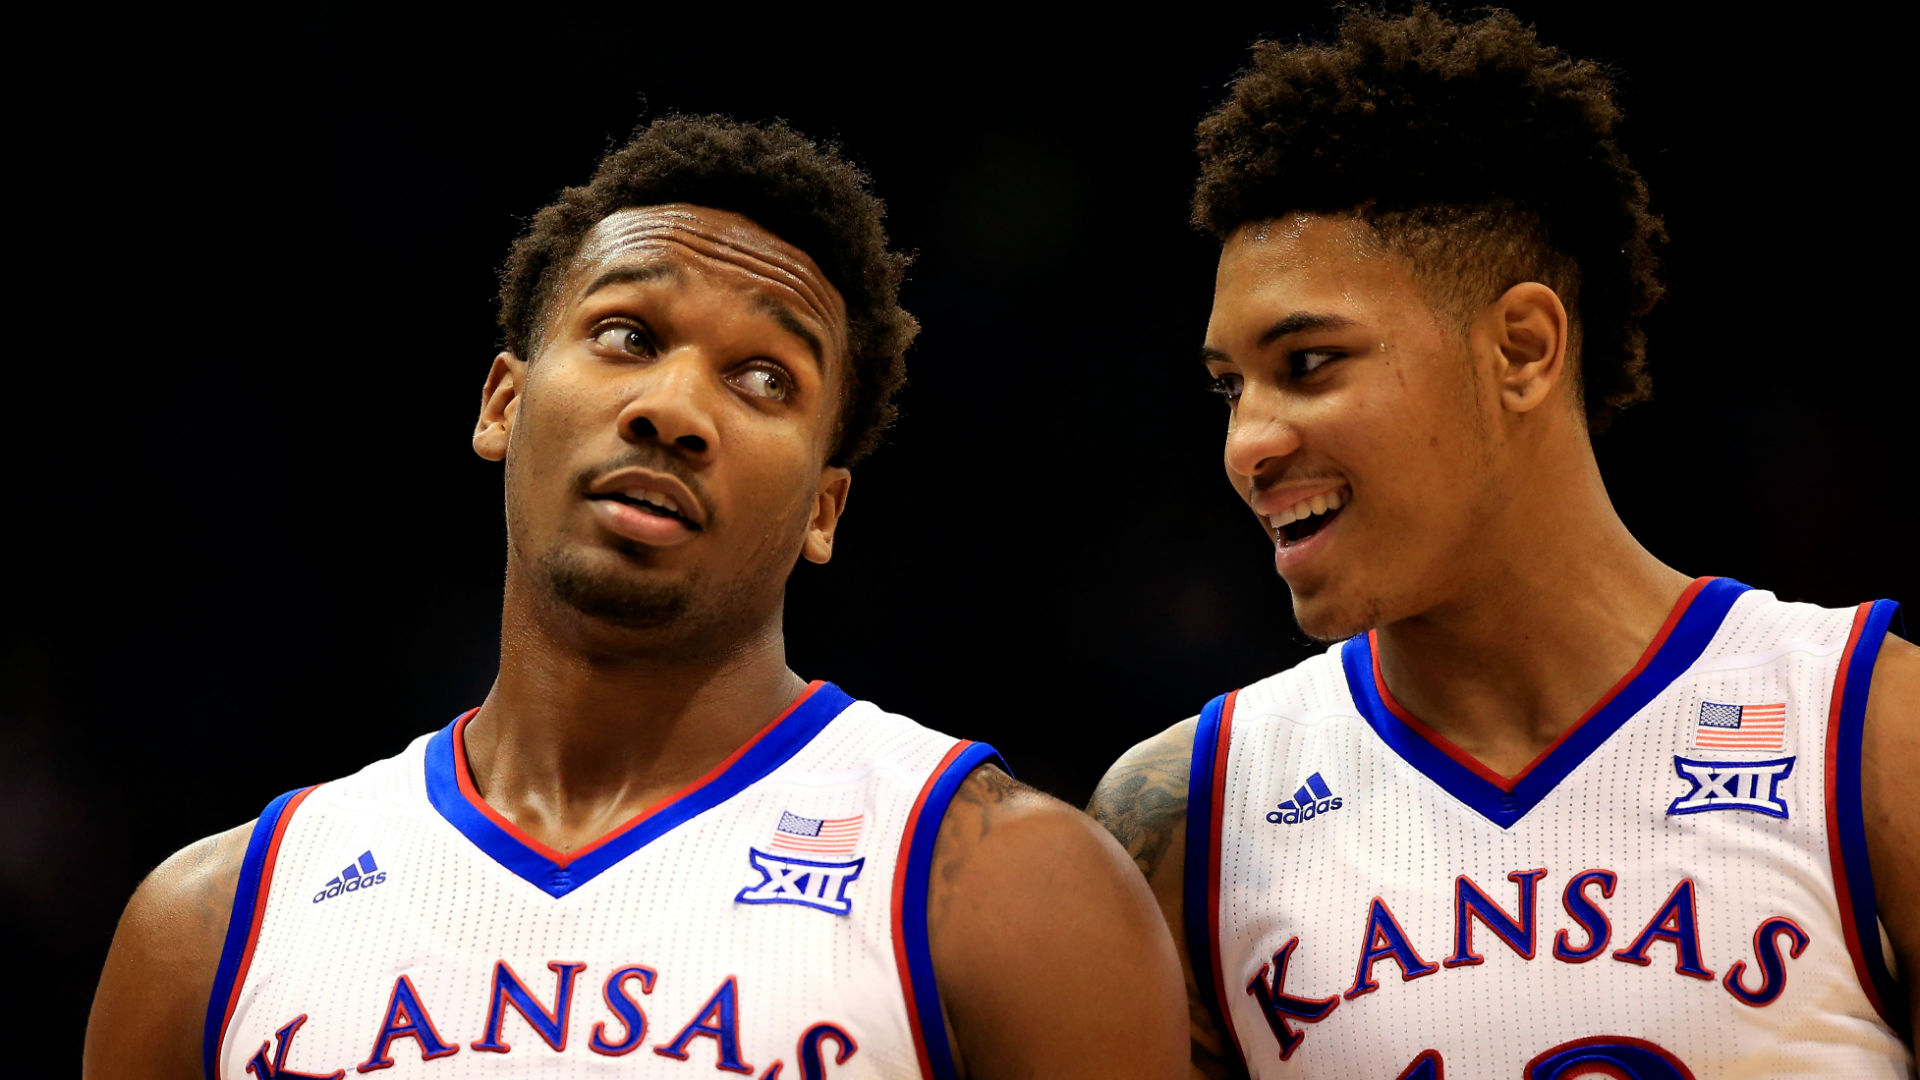 College basketball lines and picks – Jayhawks host Sooners in Big 12 showdown